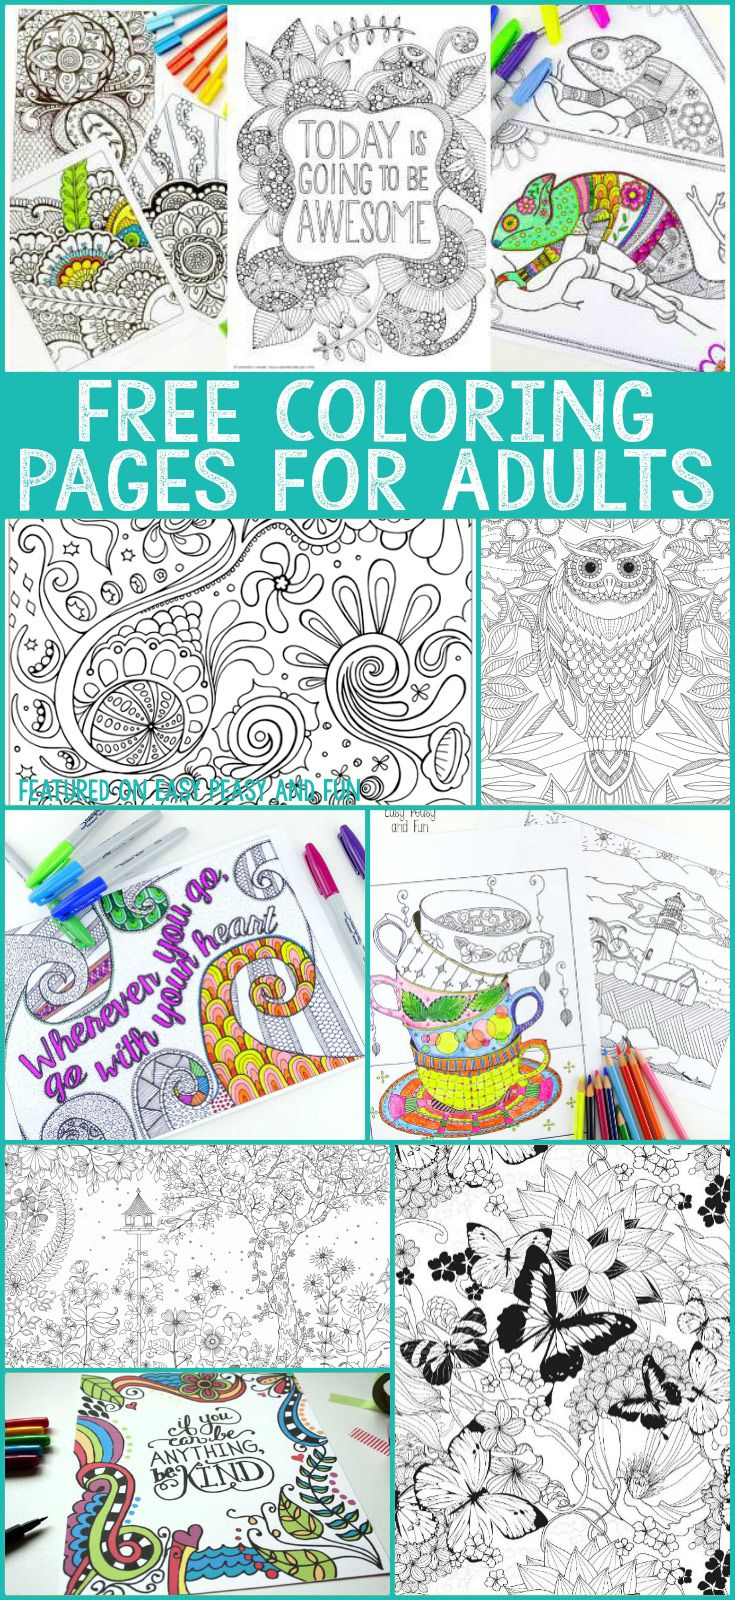 Free Coloring Pages for Adults | Free, Adult coloring and Craft